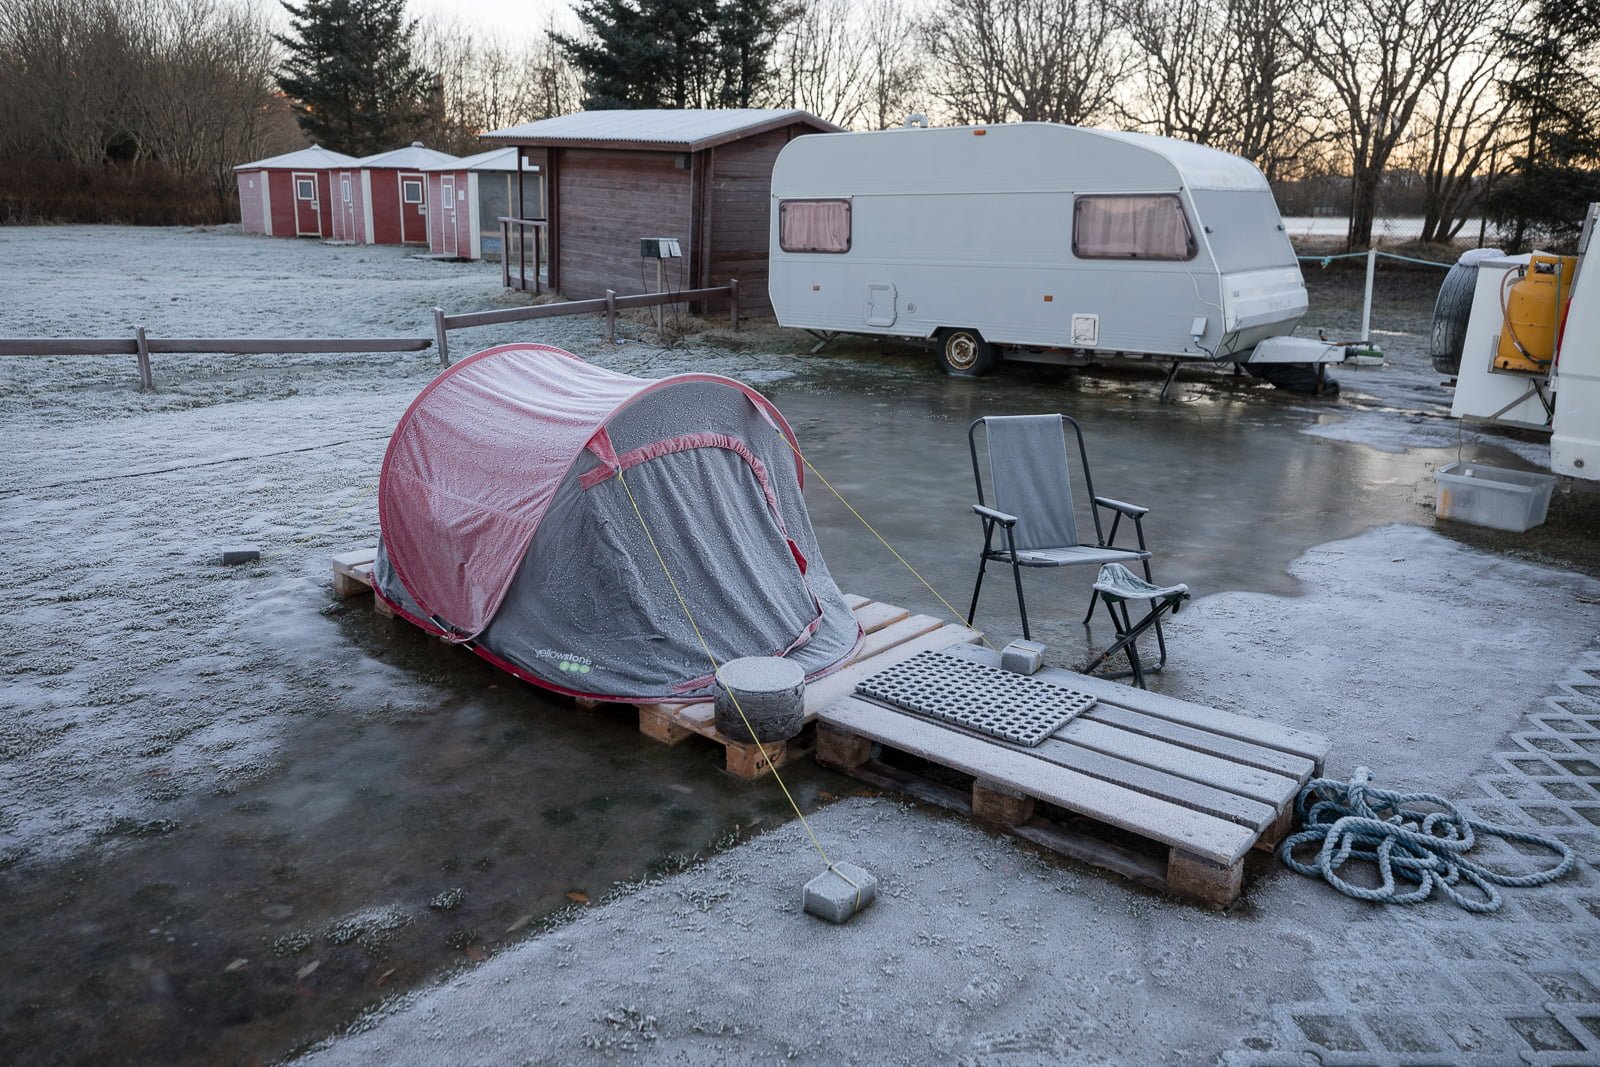 The Voices Unheard: Locals Living In Vans at Reykjavík Campsite Speak Up